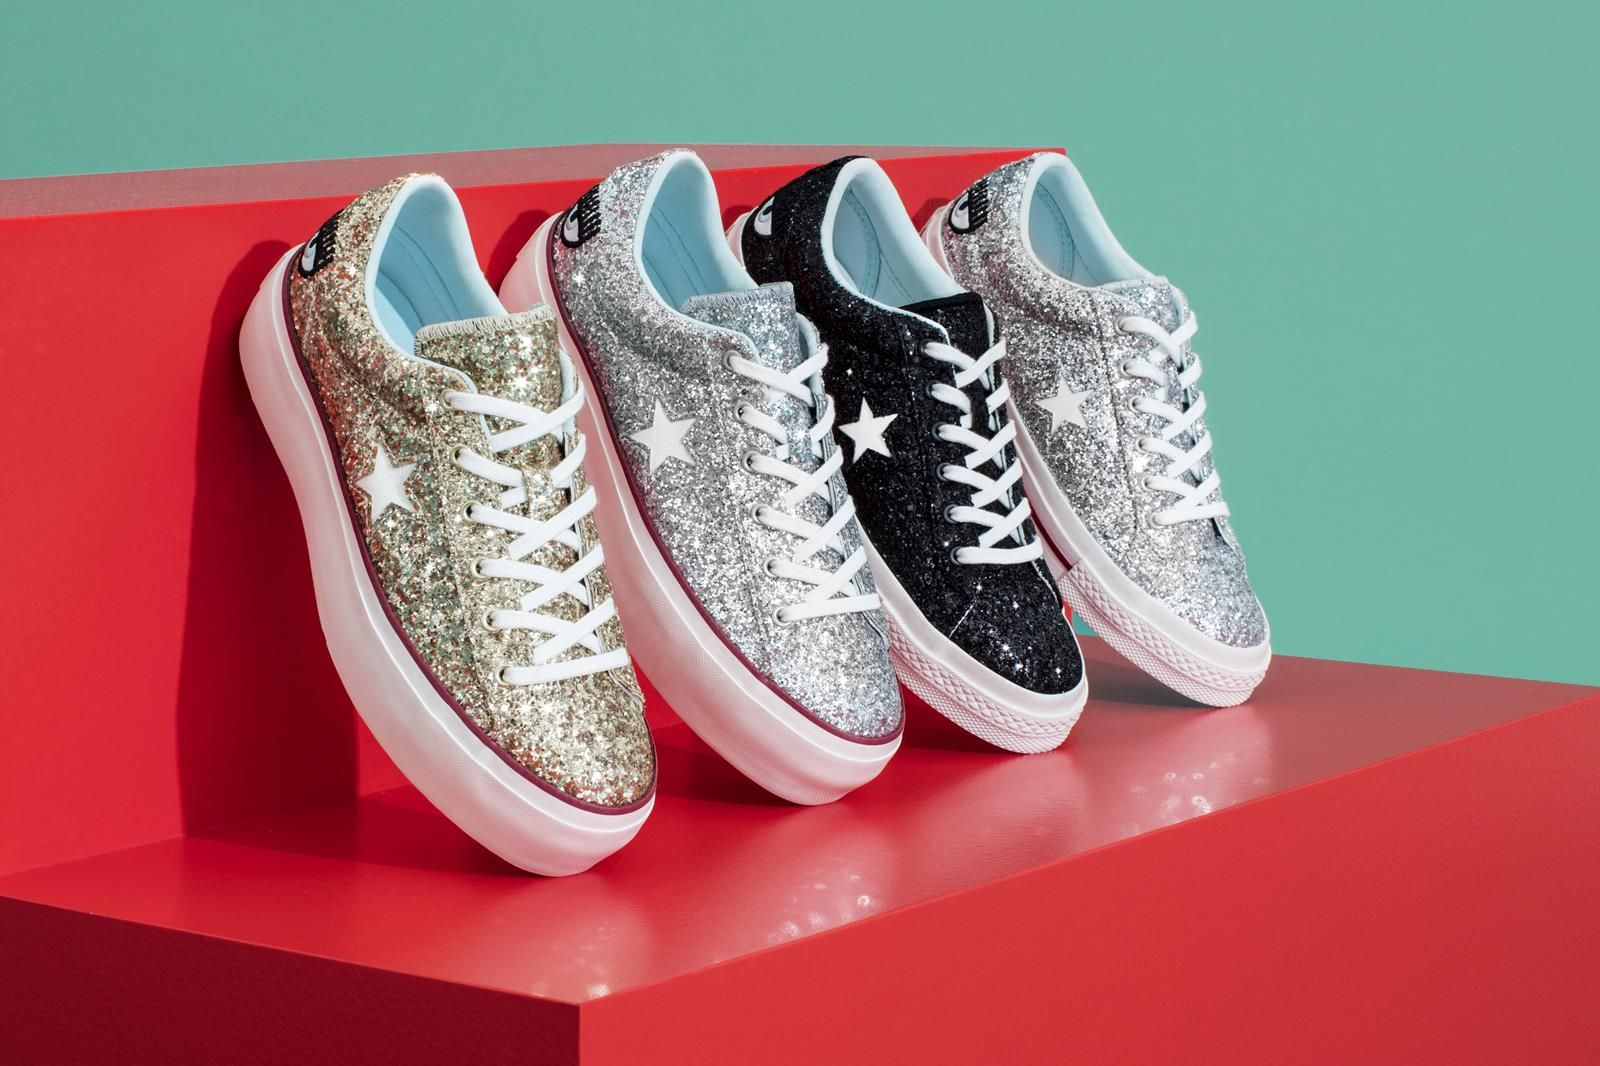 c159545a3e7c Converse presenta One Star by Chiara Ferragni Collection